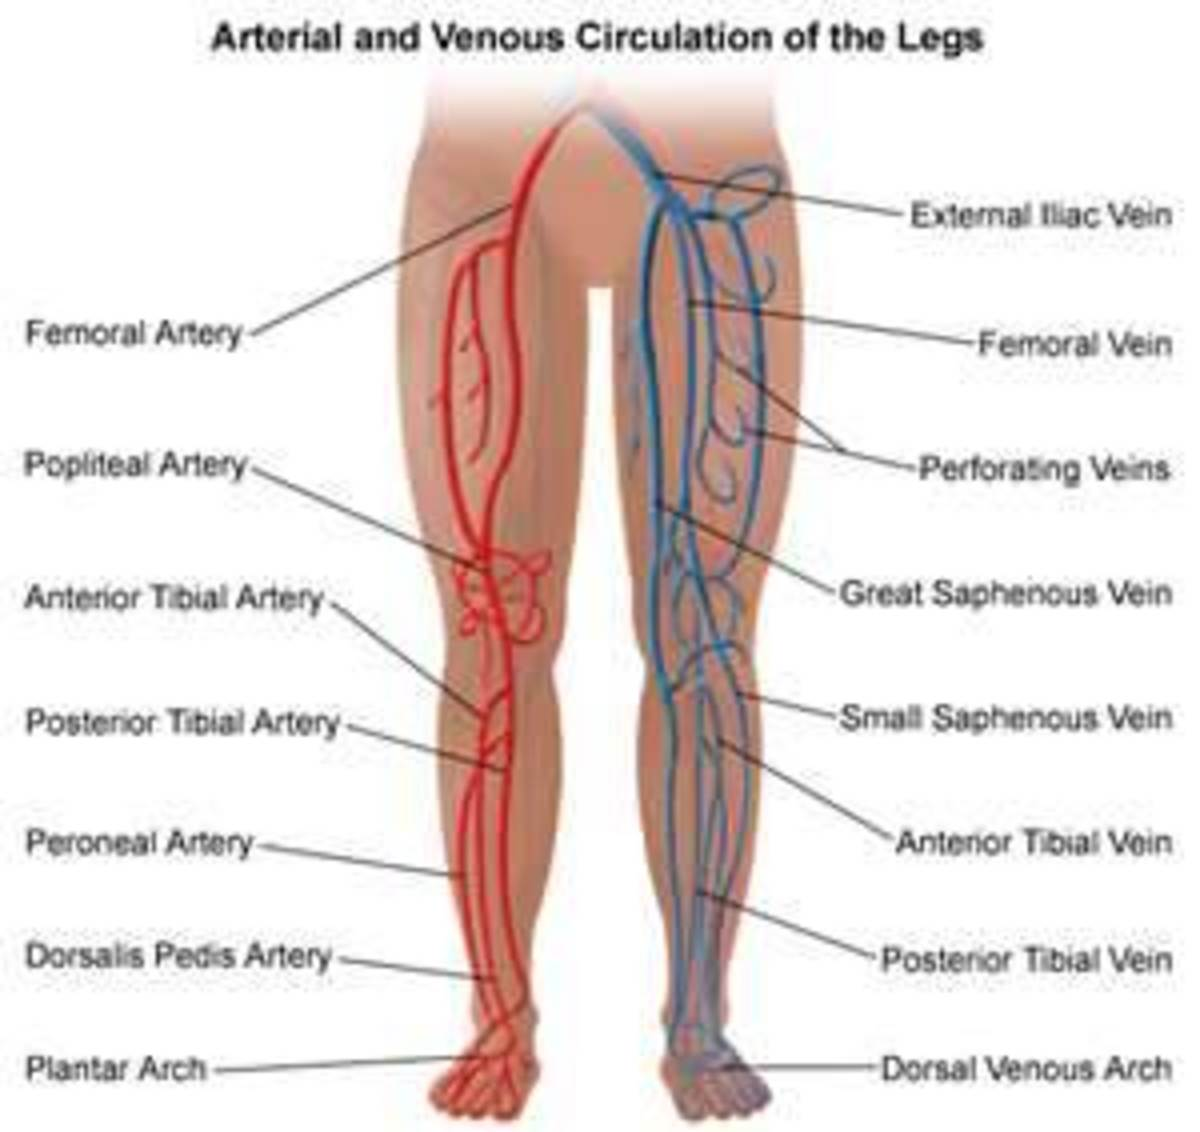 What causes the pain in my legs and how can I prevent it?